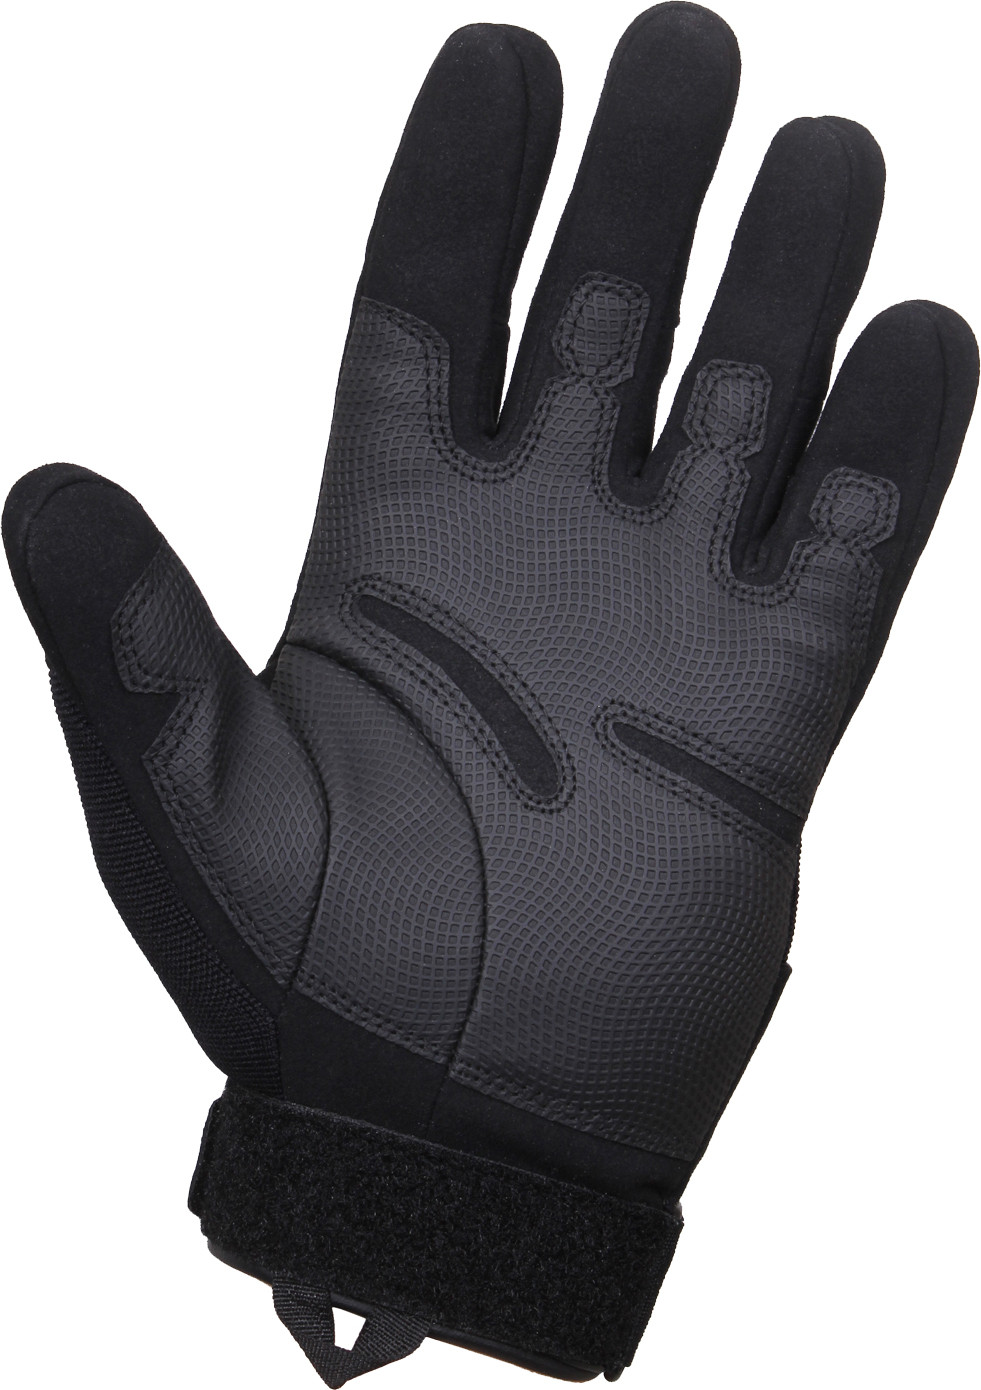 Black Military Padded Low Profile Tactical Shooting Gloves 3d0bc43d628